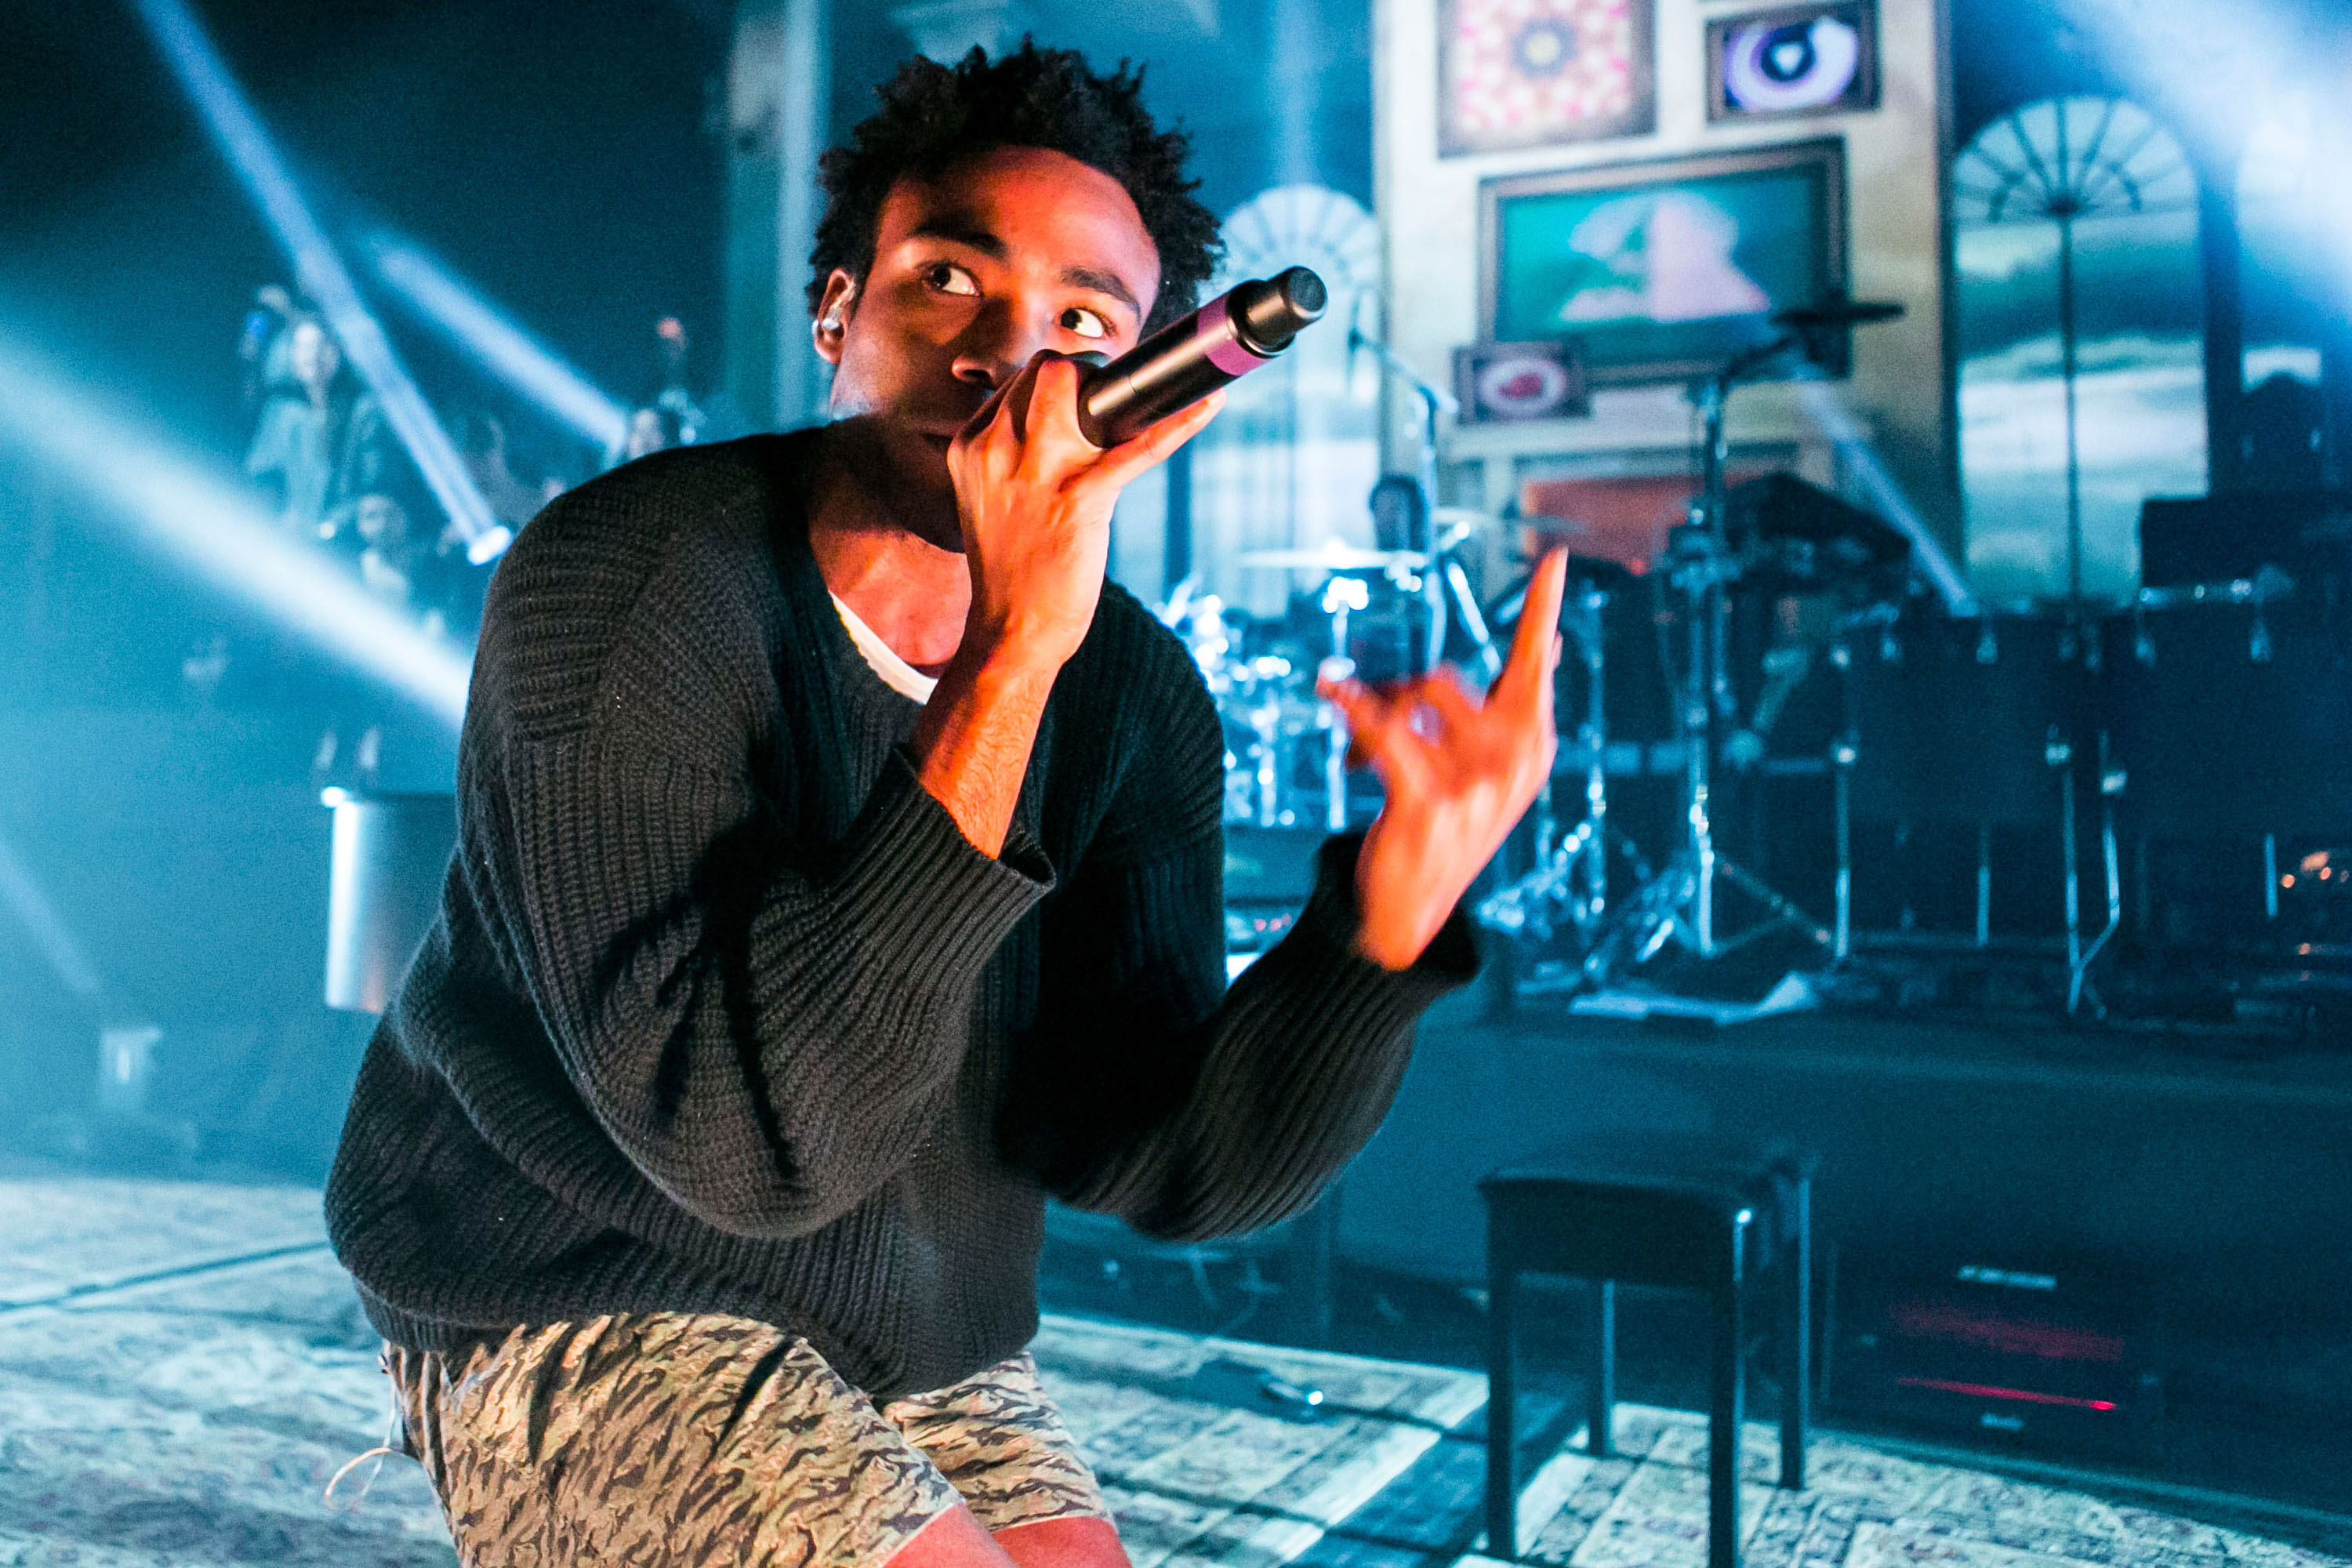 Donald Glover performs as Childish Gambino during his Deep Web Tour at The Fillmore on March 22 in Detroit, Michigan.